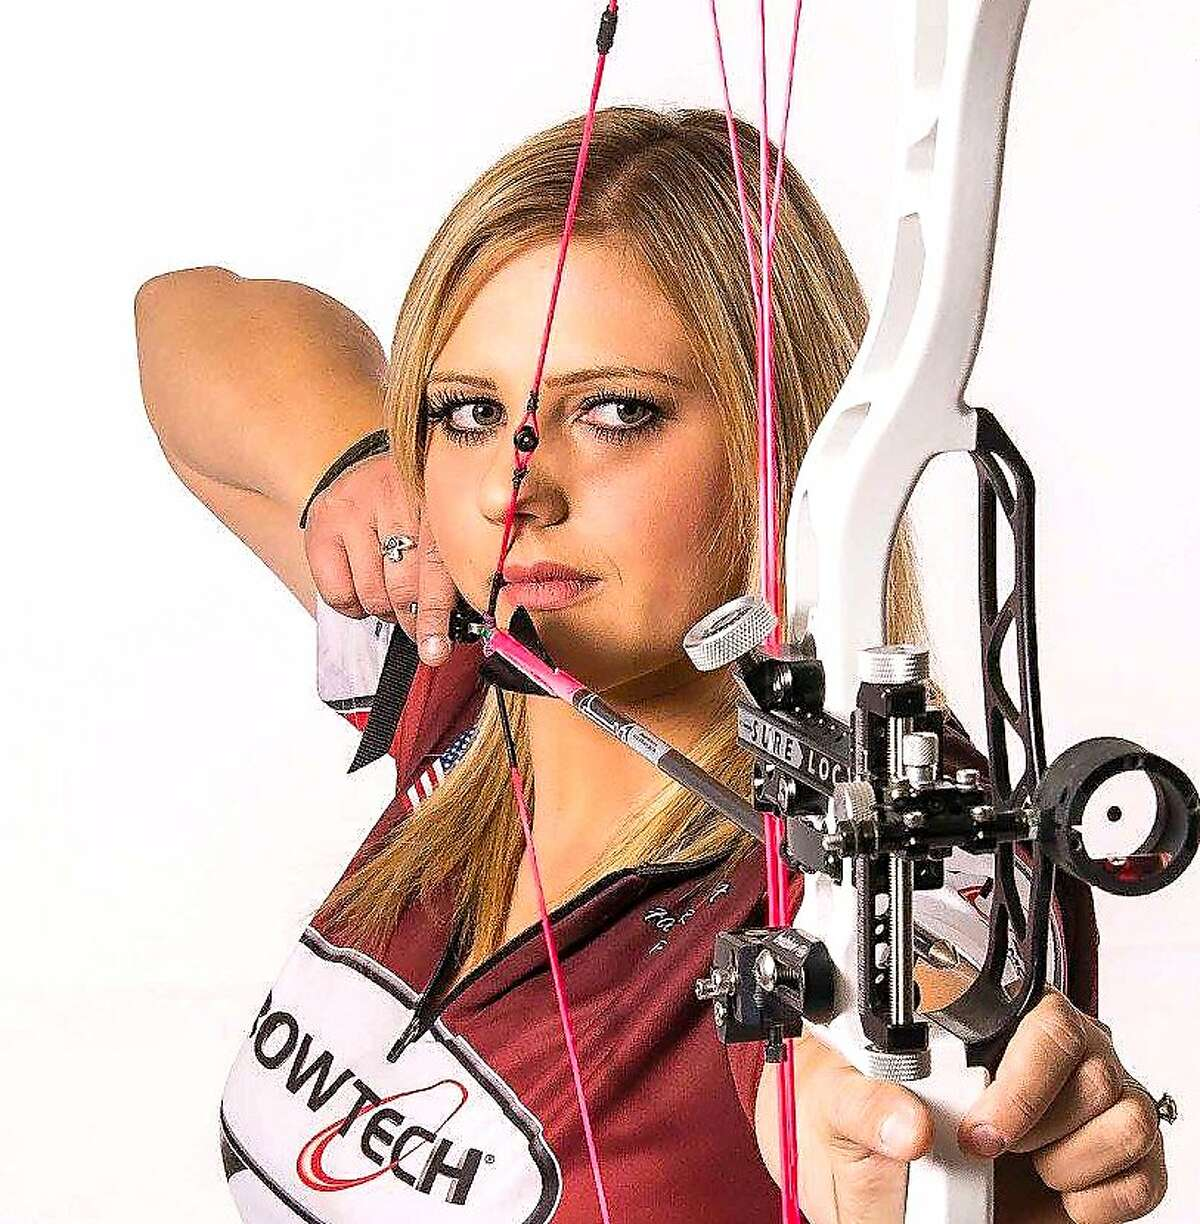 """Paige Pearce-Gore is a world-renown competitive archer who doubles as a youth outdoors instructor who has networks with the Congressional Sportsmen's Foundation, who as 22, was selected as California's """"New Mover, Shaker"""" by the California Outdoors Hall of Fame and will be inducted at the Sportsmen's Expo on Jan. 20"""